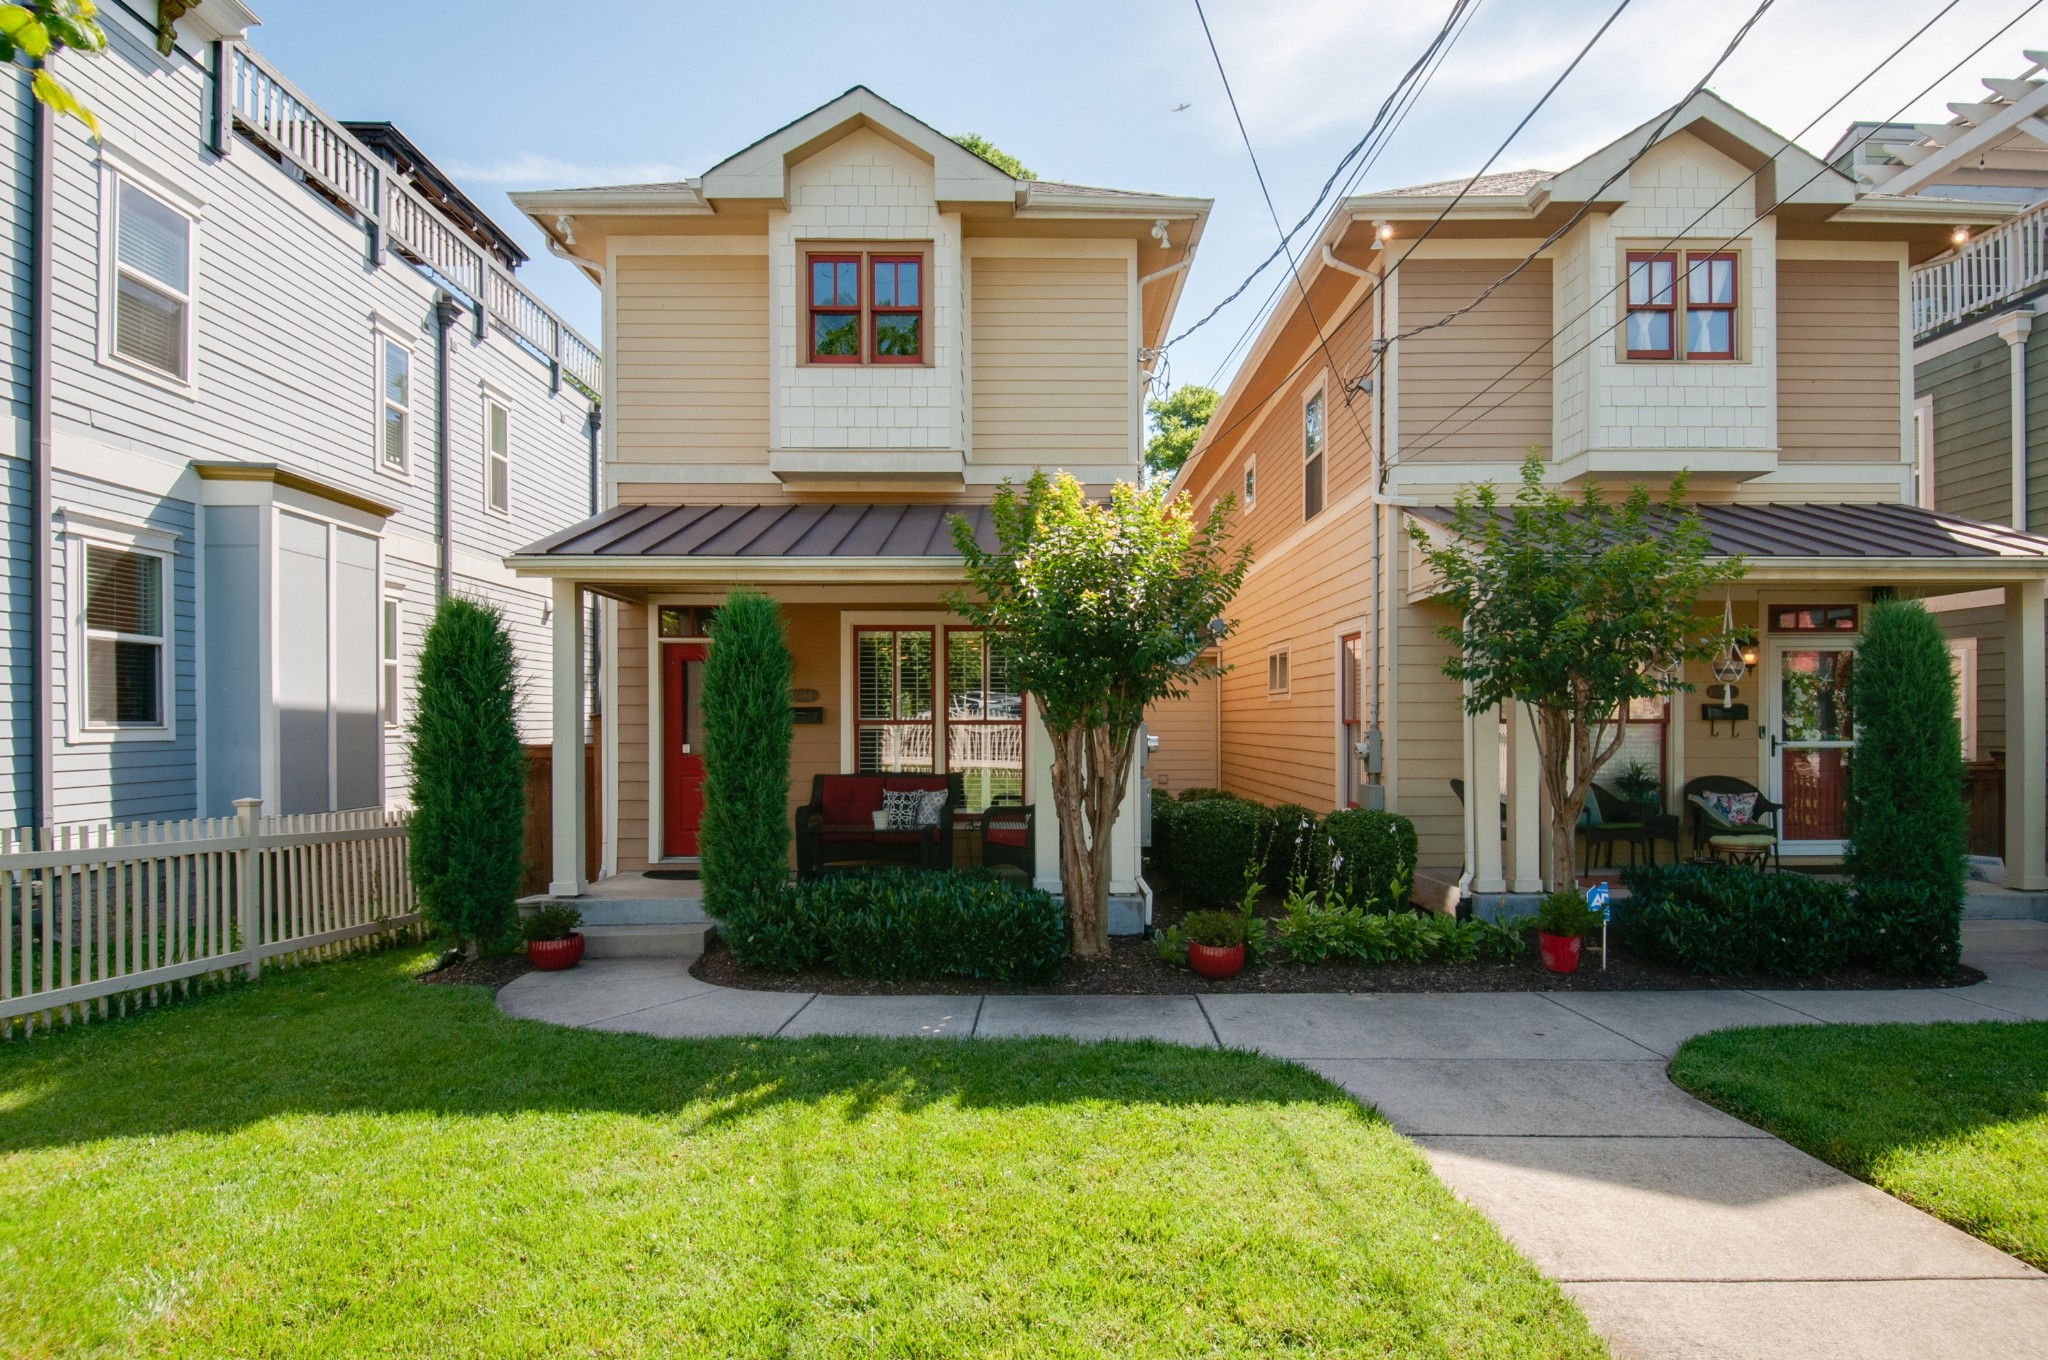 7th Avenue Townhomes Real Estate Listings Main Image